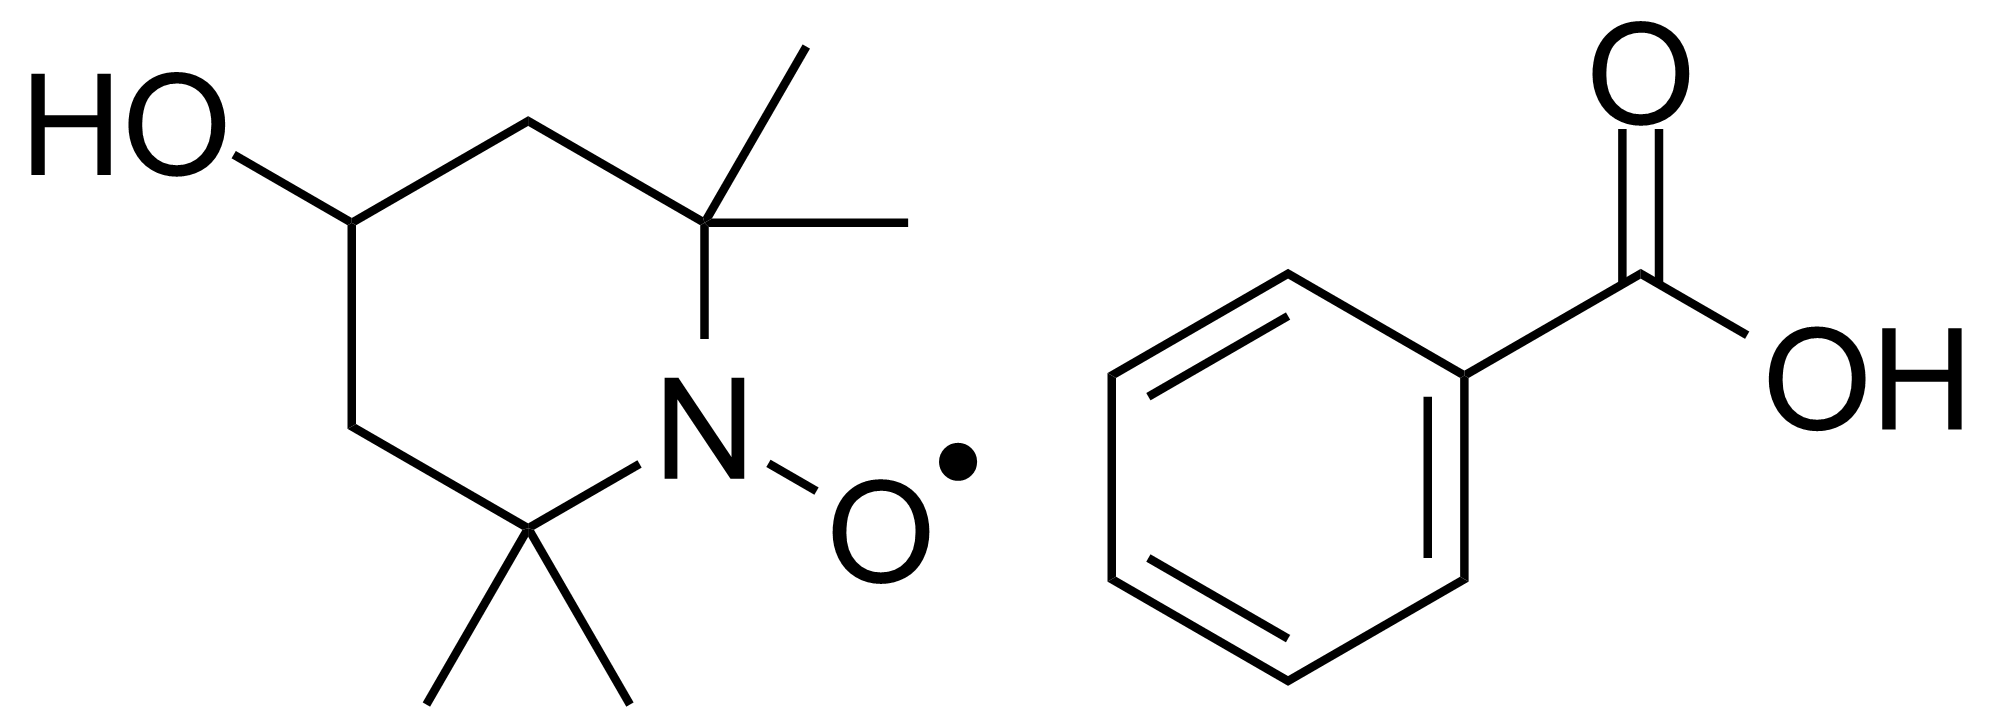 Structure of 4-Hydroxy-TEMPO-benzoate